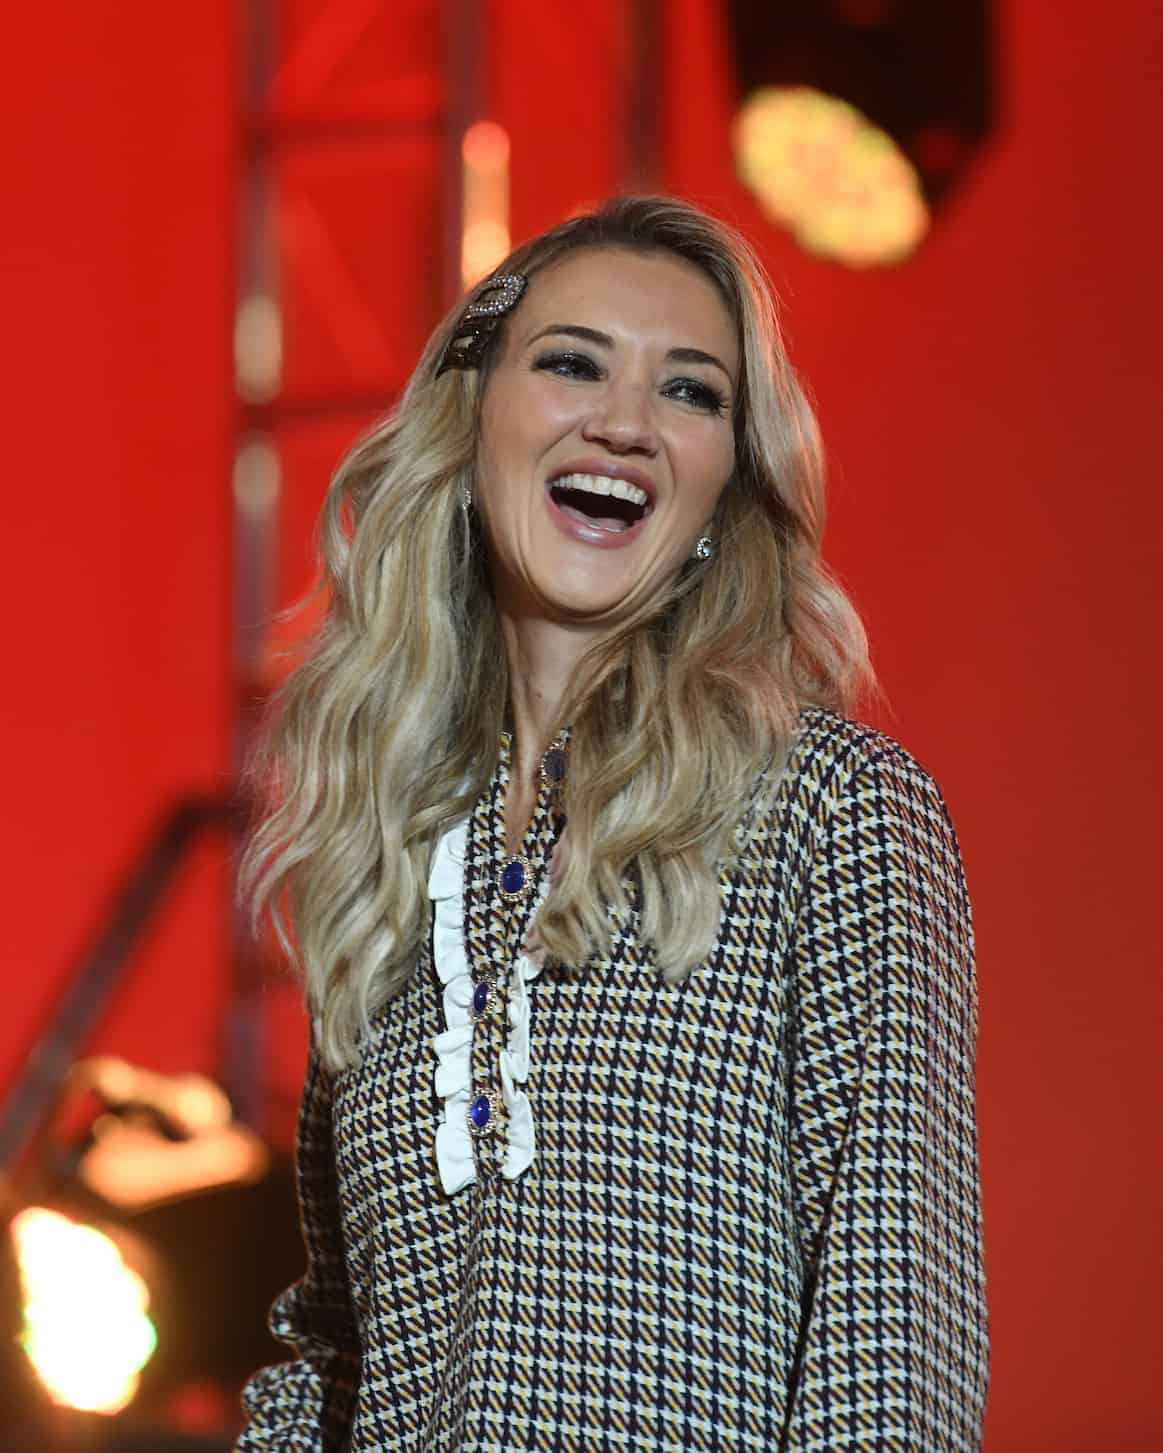 sSarah darling | The British Country Music Festival 2019